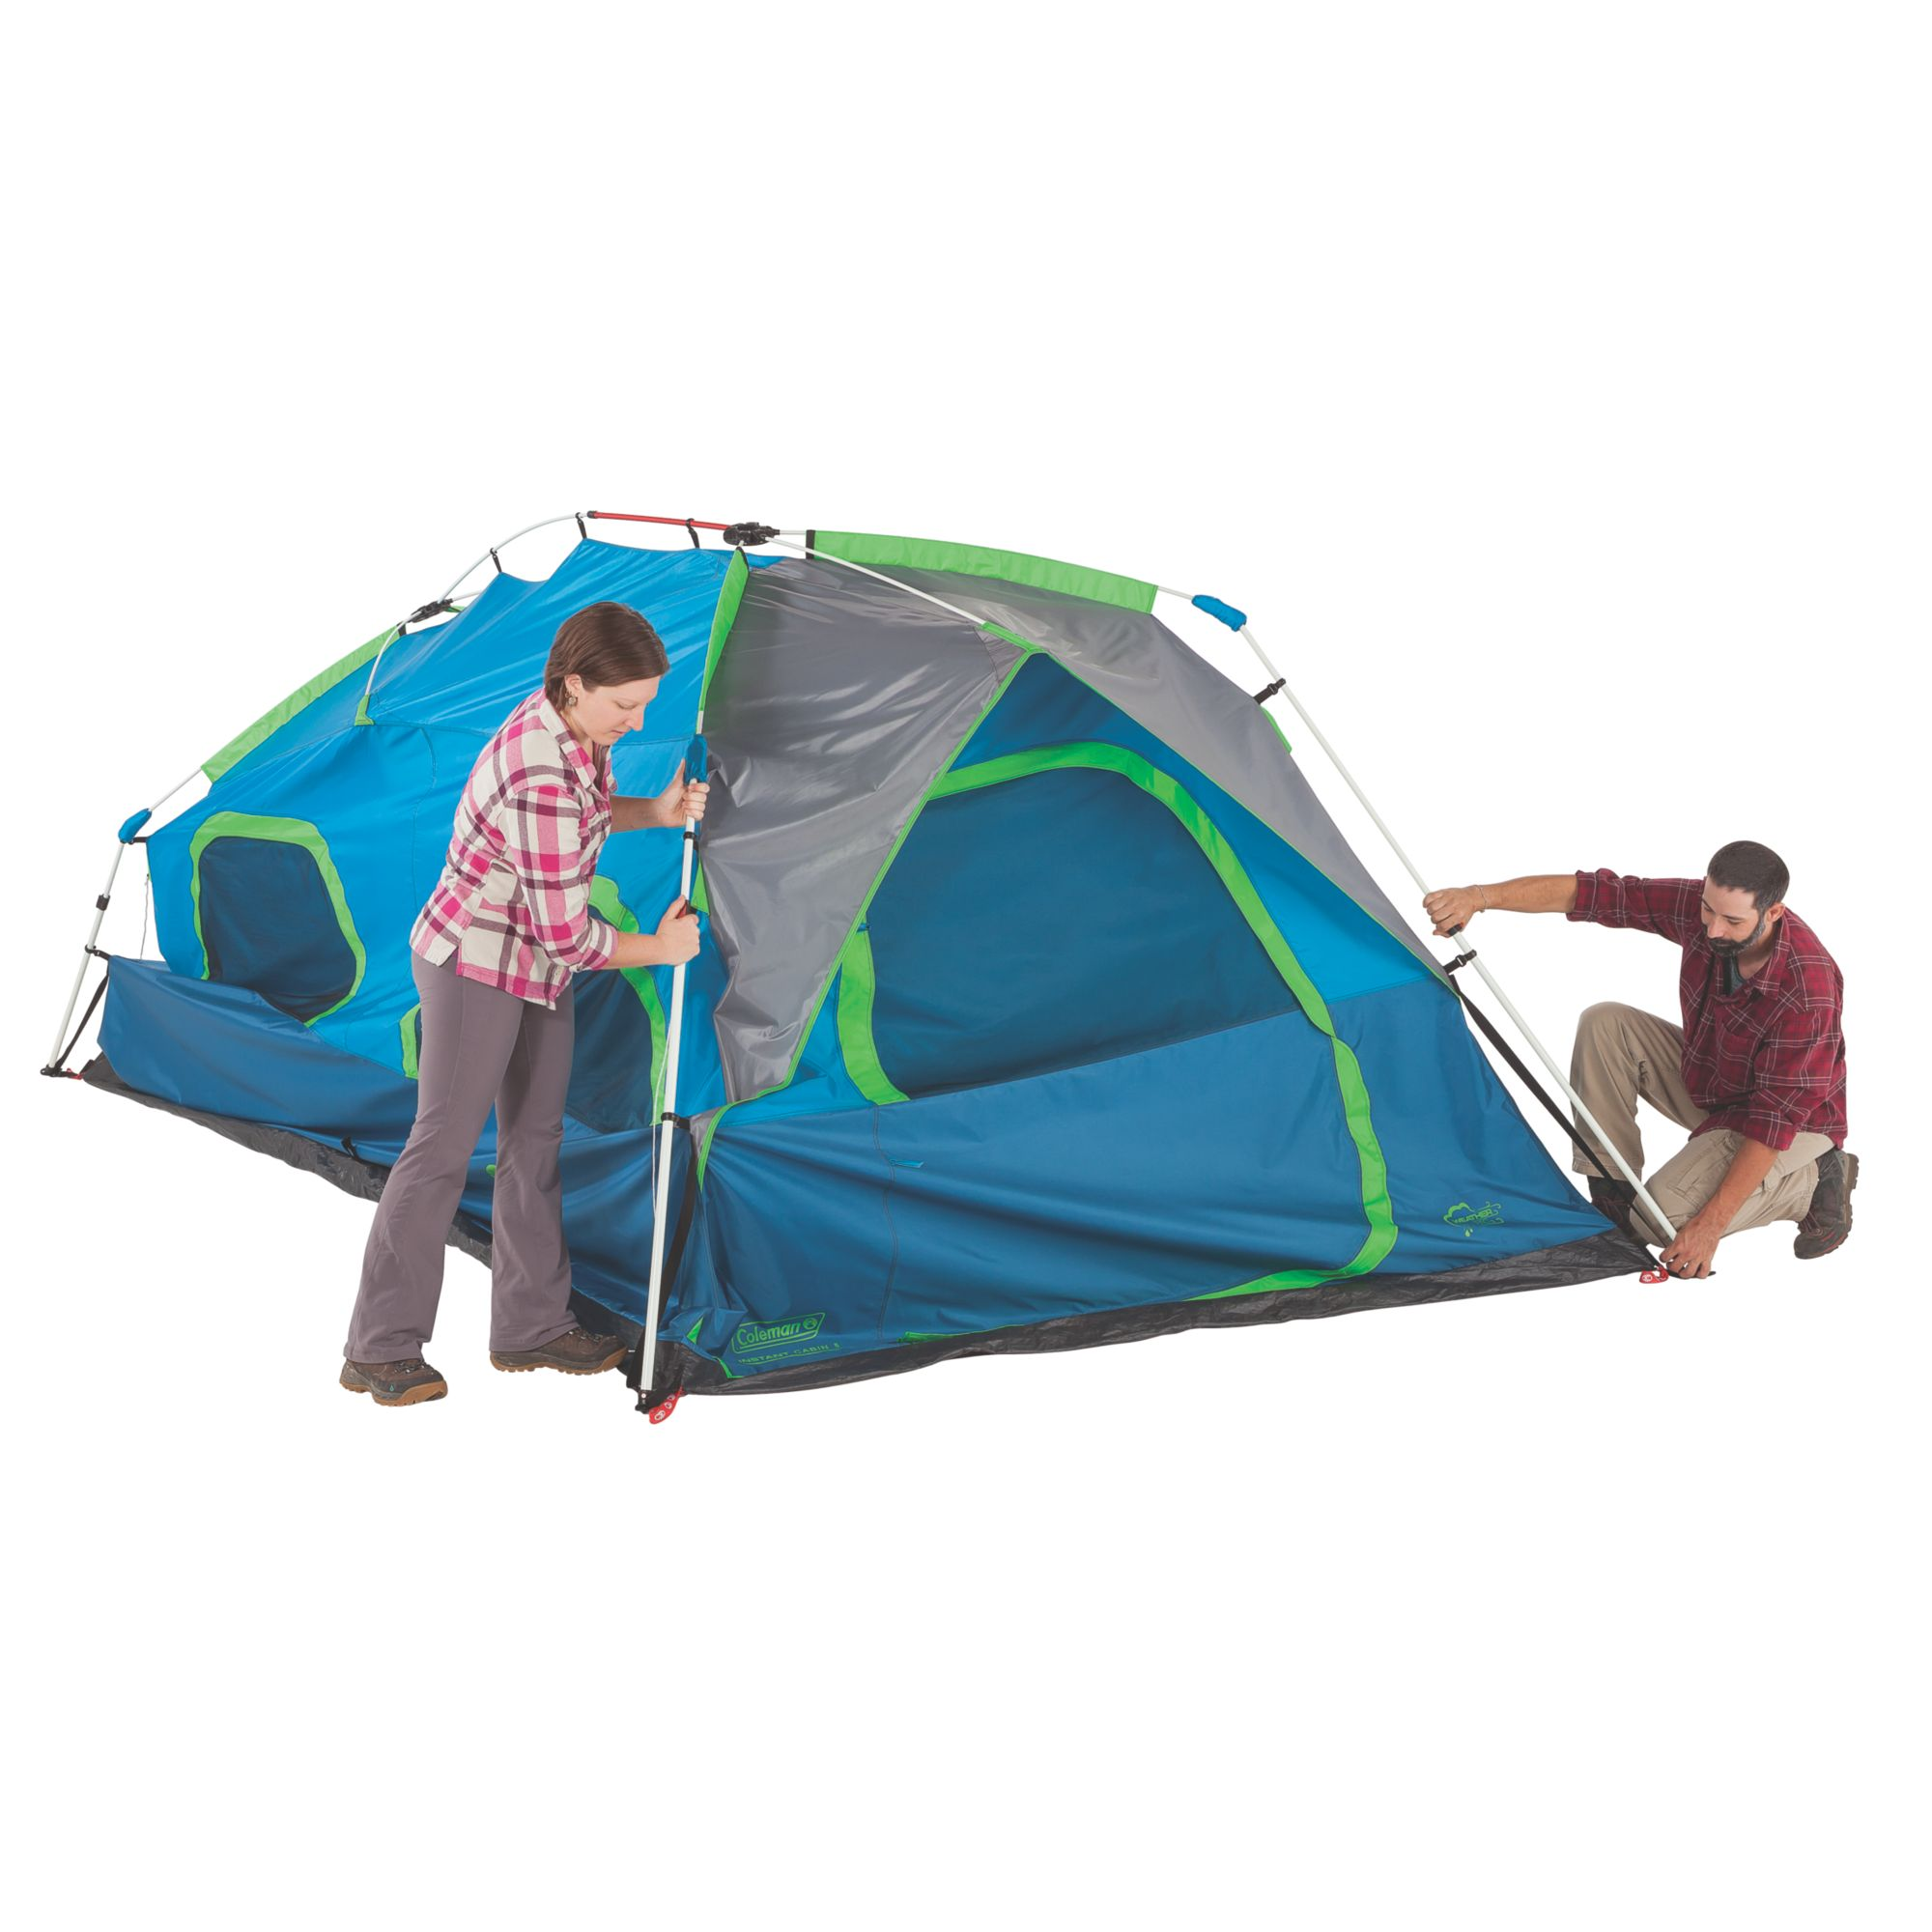 Instant tents 8 person tent coleman tent signal mountain 8 person instant sciox Image collections